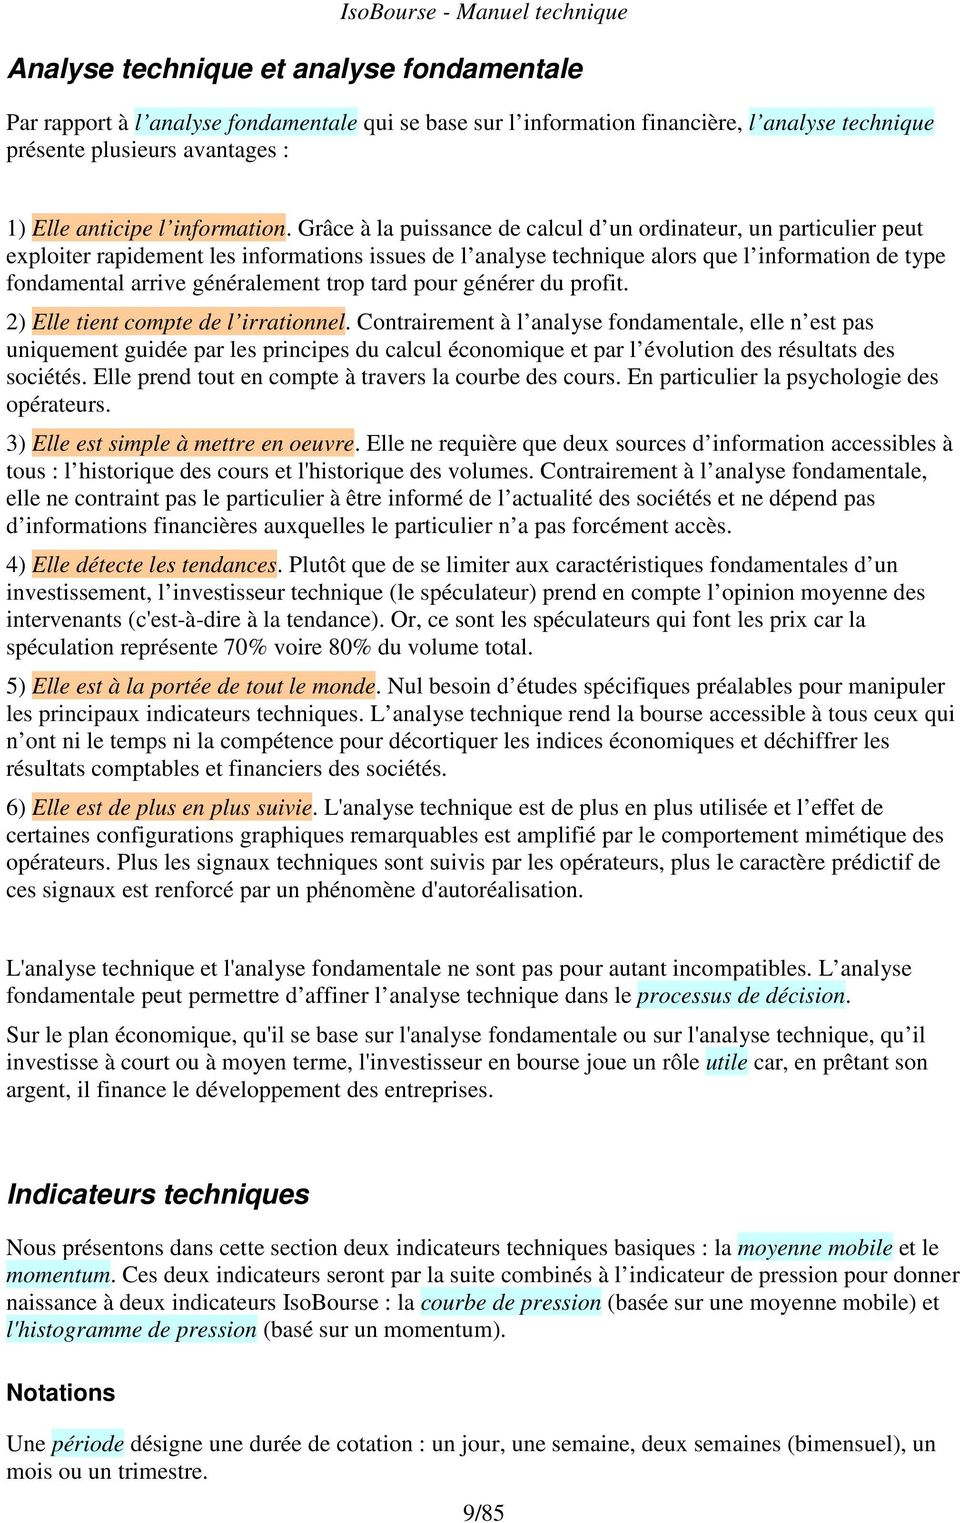 Grâce à la puissance de calcul d un ordinateur, un particulier peut exploiter rapidement les informations issues de l analyse technique alors que l information de type fondamental arrive généralement